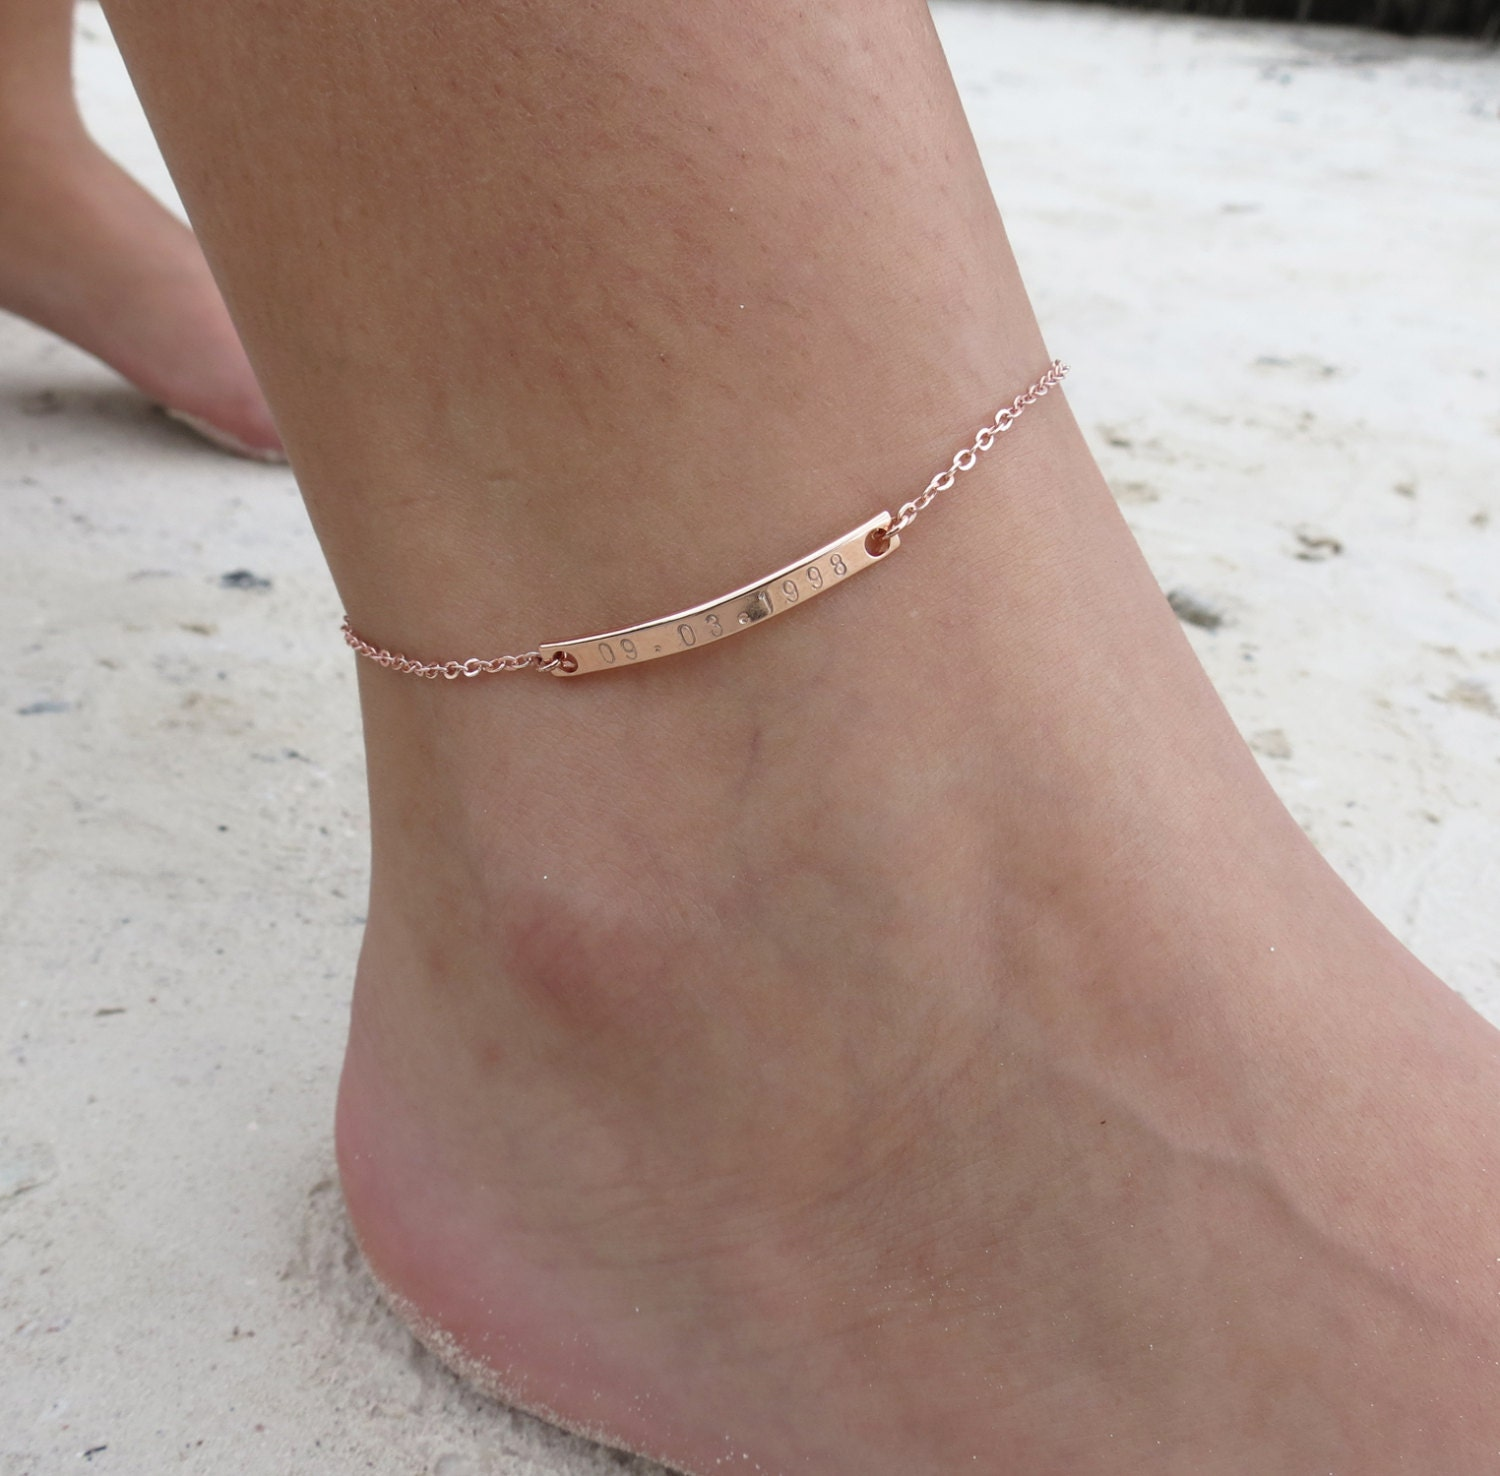 plated with anklet bracelets gold women rose bracelet glisse allure silver charms sterling ankle